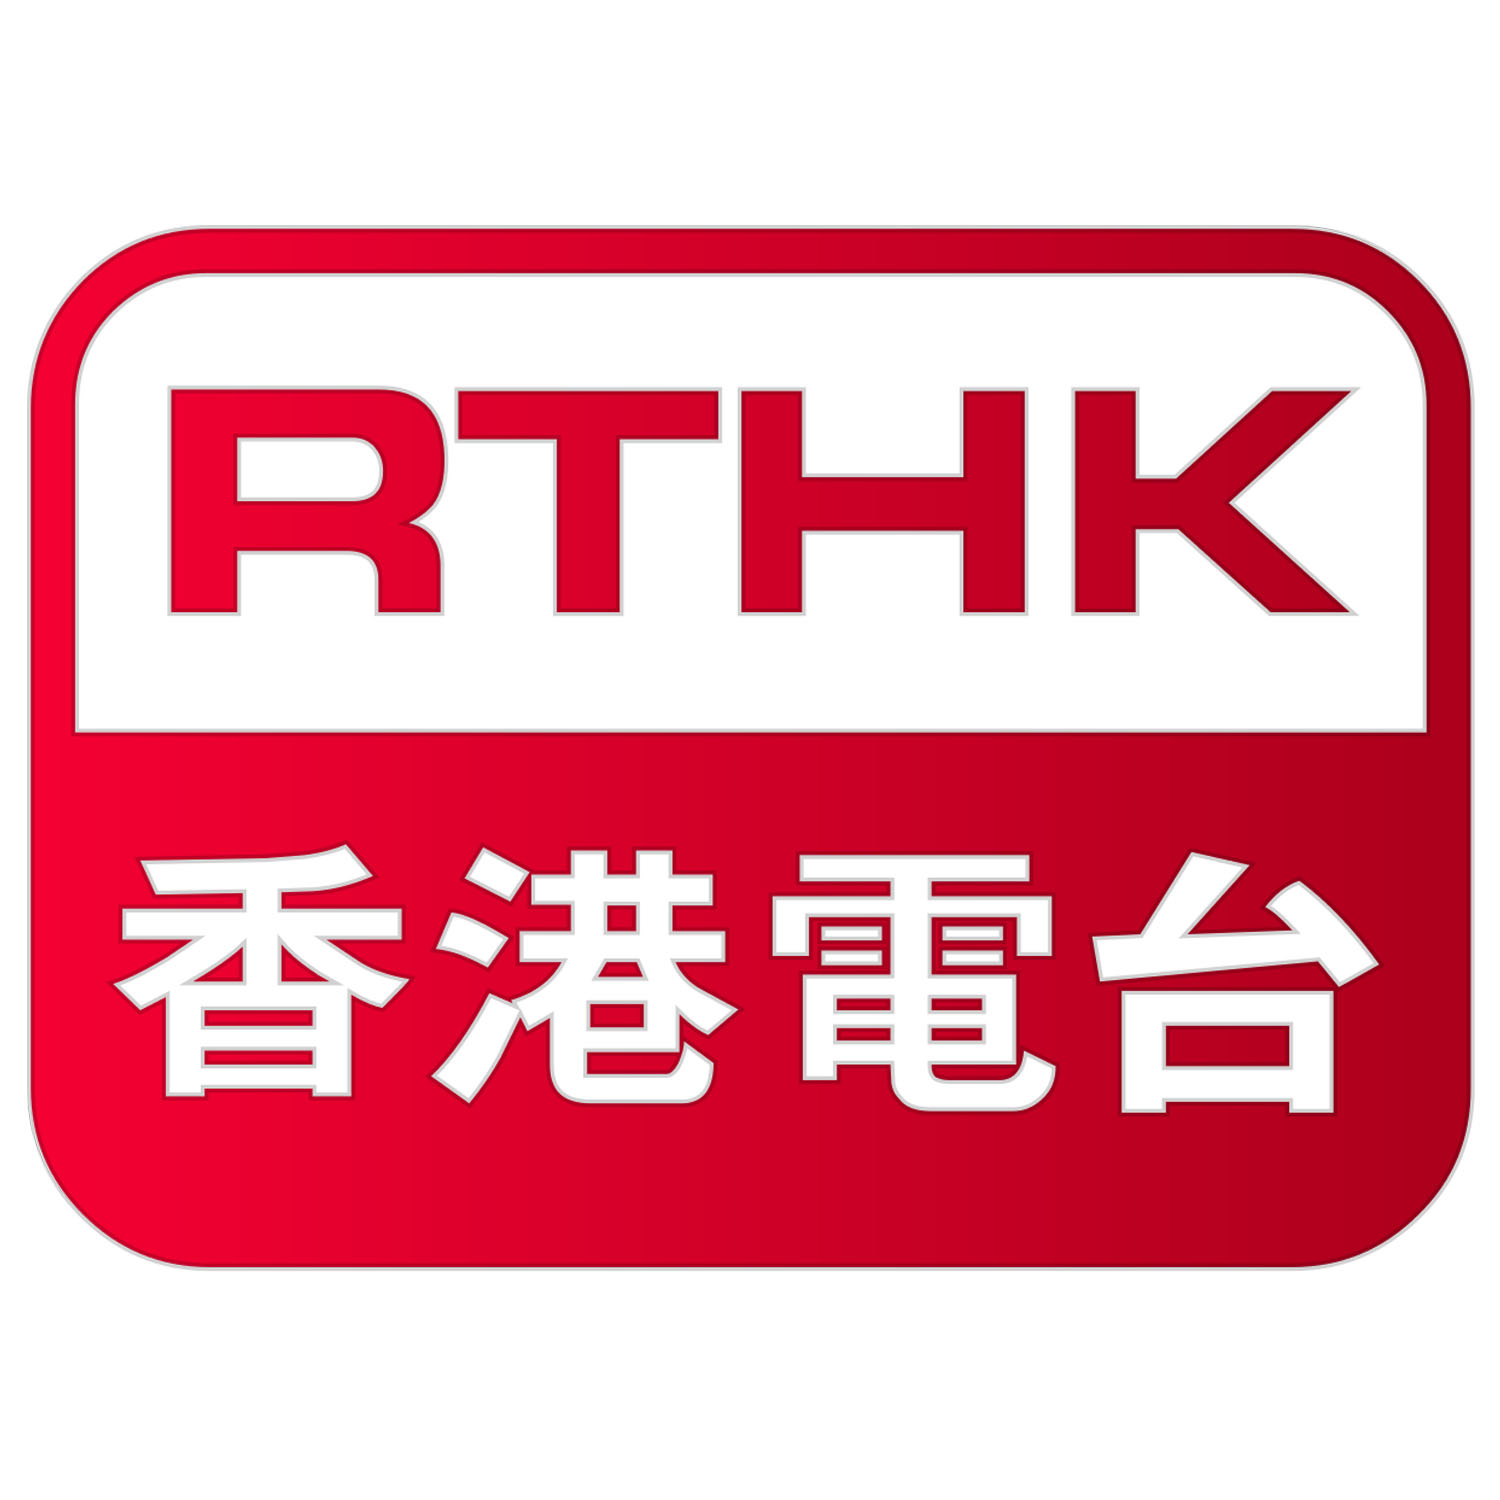 27 Oct 2017  123 Show with Noreen Mir on RTHK Radio 3  123 Show with Noreen Mir on RTHK Radio 3 to discuss the call for nominations for Resolve's inaugural fellowship